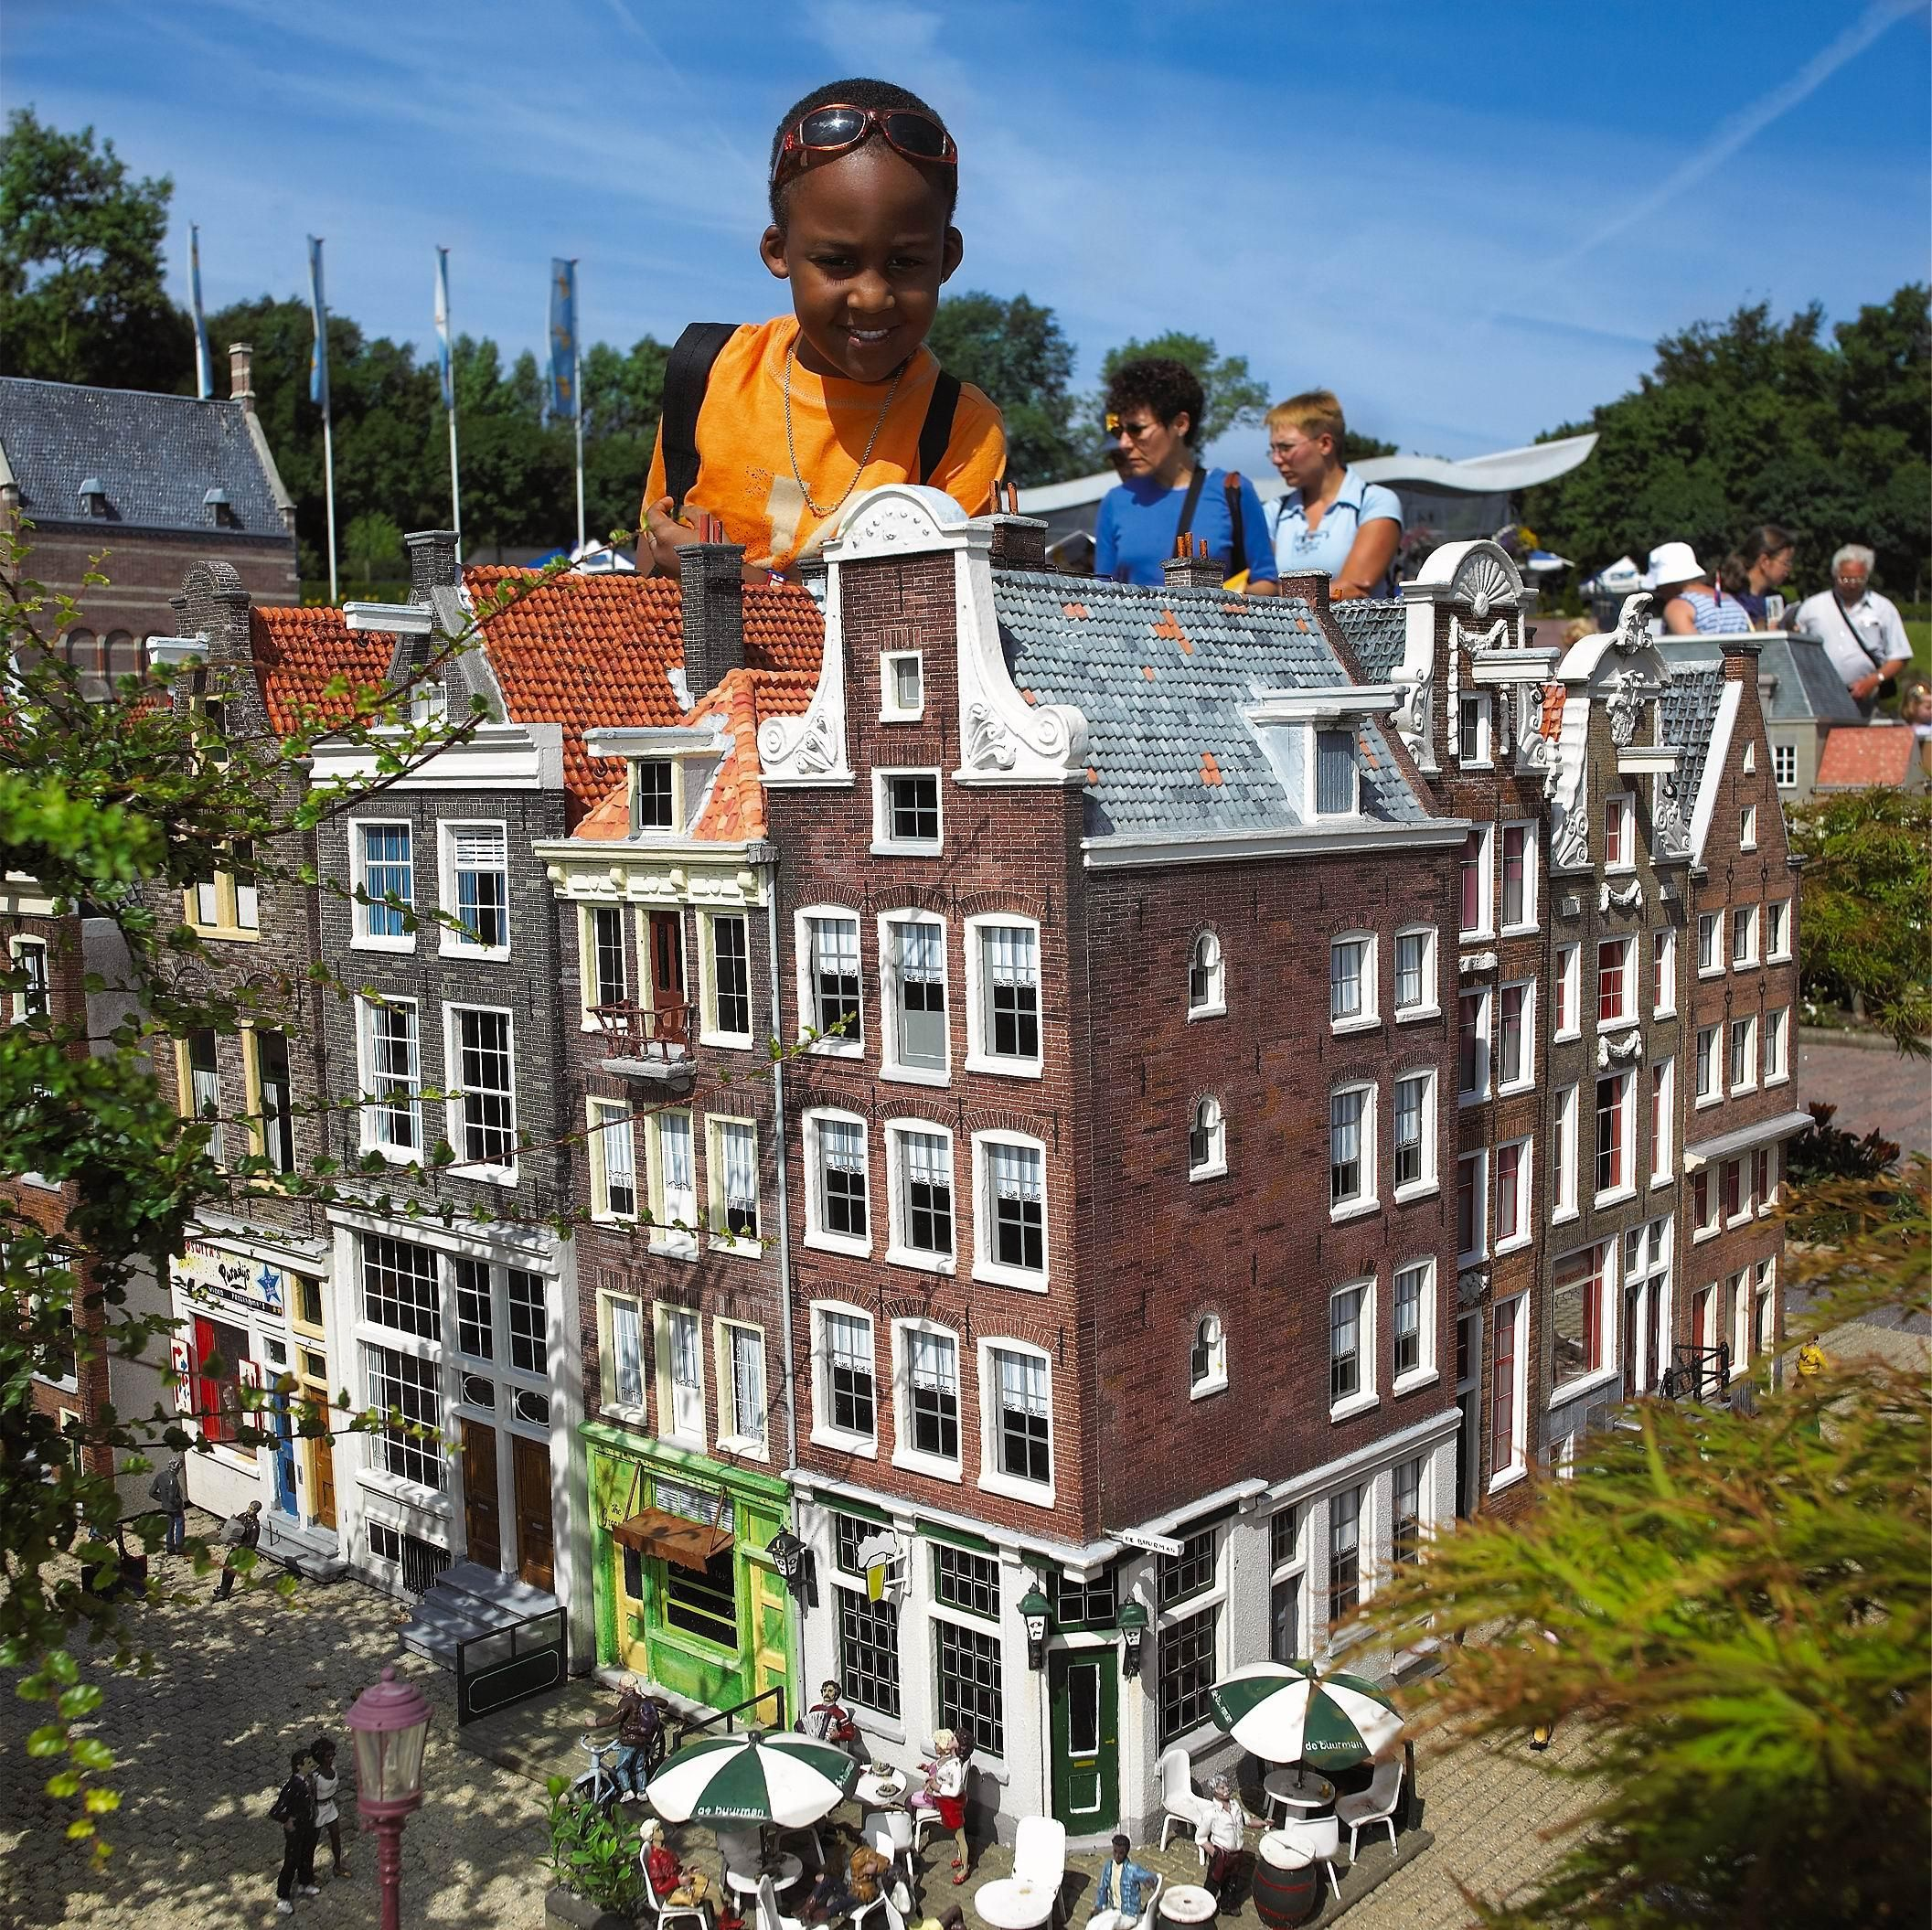 Dollhouse Miniatures Amsterdam: Madurodam, One Of My Favorite Parks To Visit As A Child